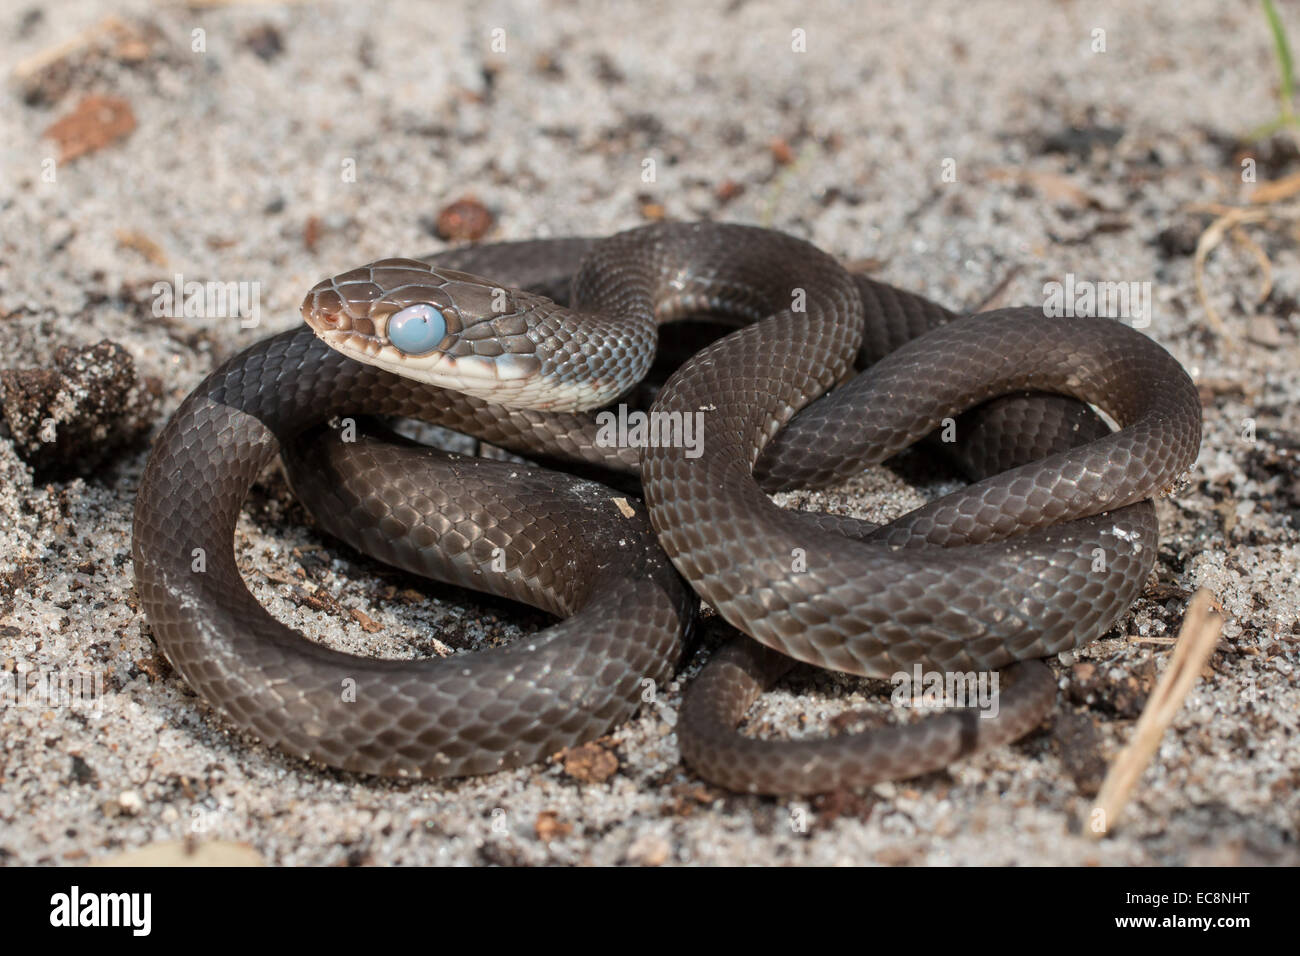 Southern black racer near shedding - Coluber constrictor priapus - Stock Image